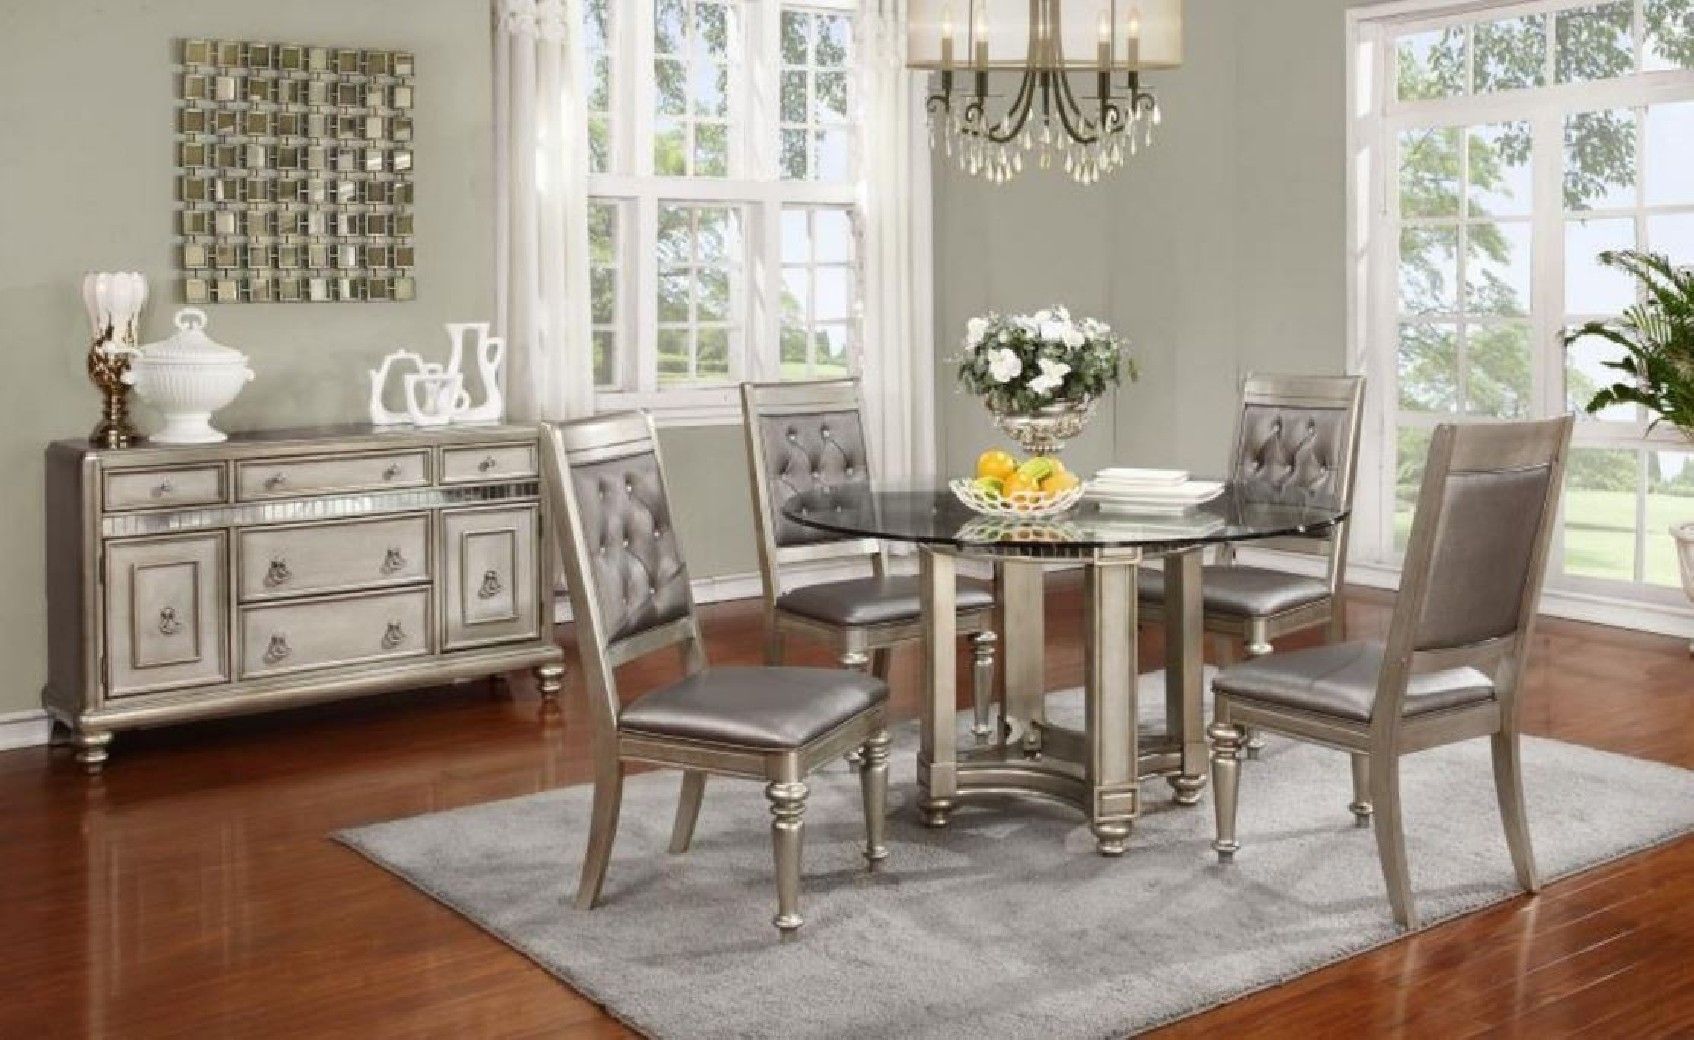 Superb 106470 Bling Game Metallic Dining Set. Round Table Glass Top Part 25